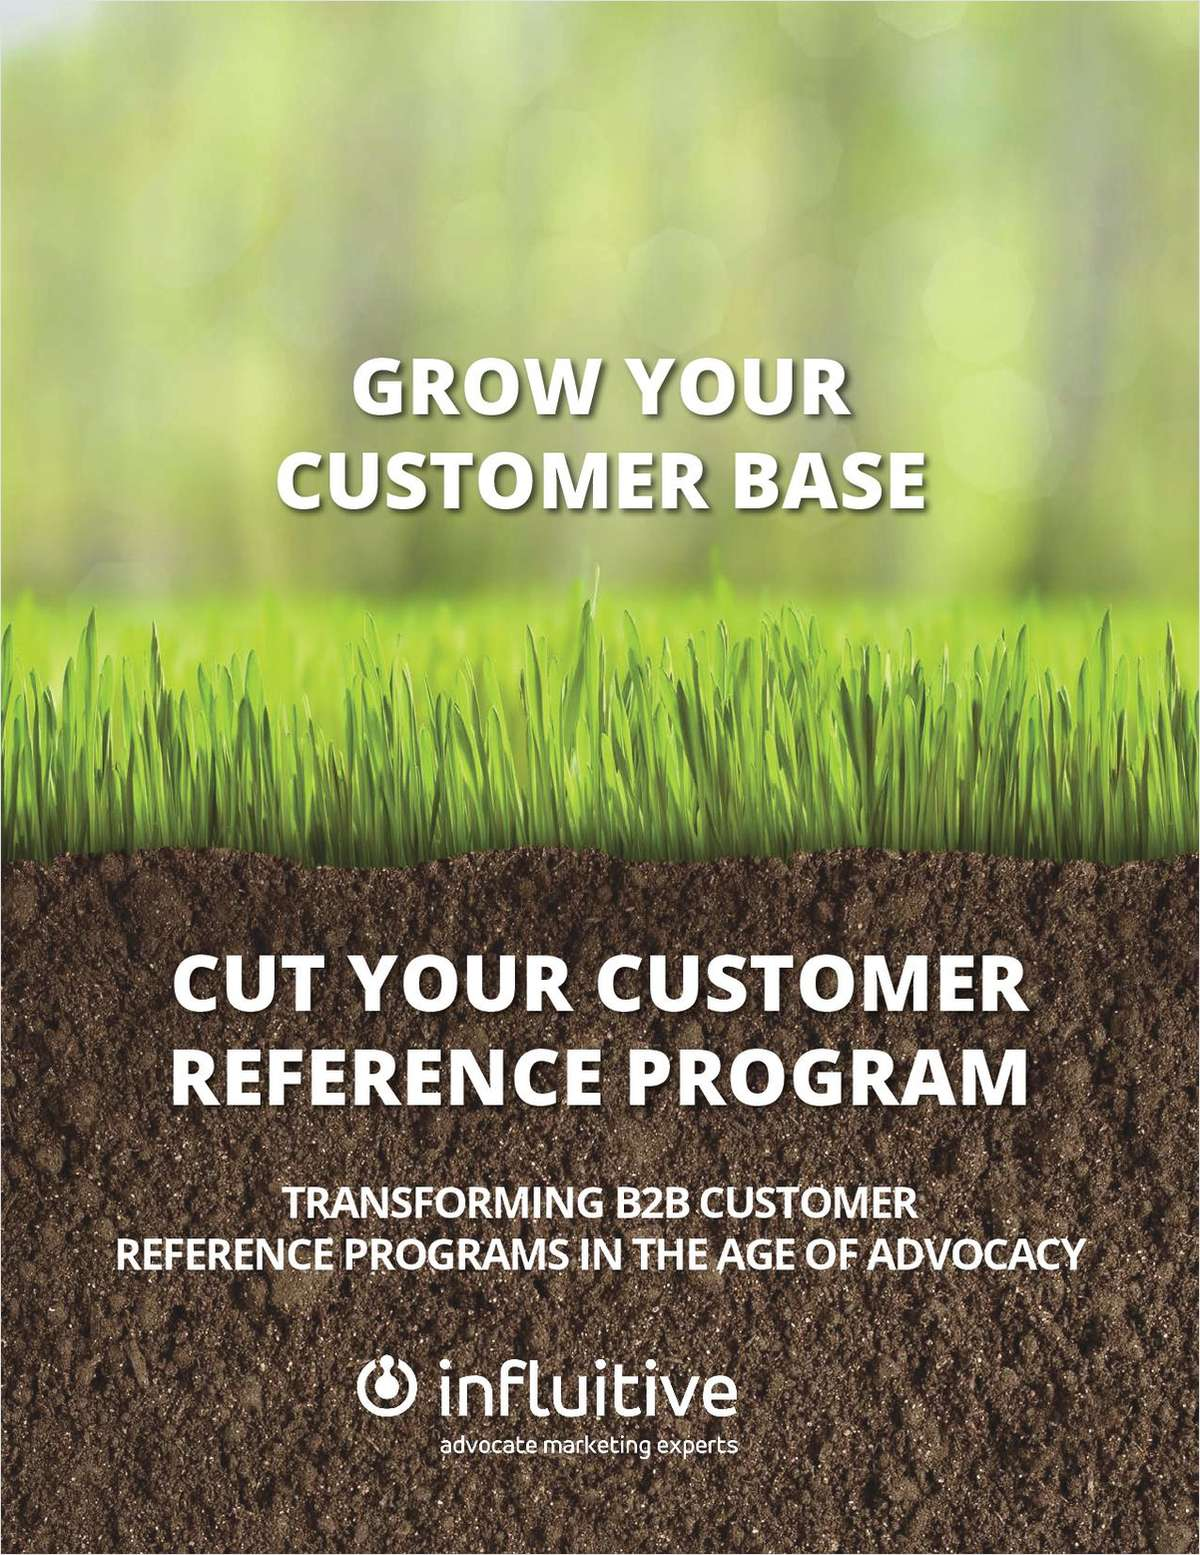 Grow Your Customer Base: Cut Your Customer Reference Program